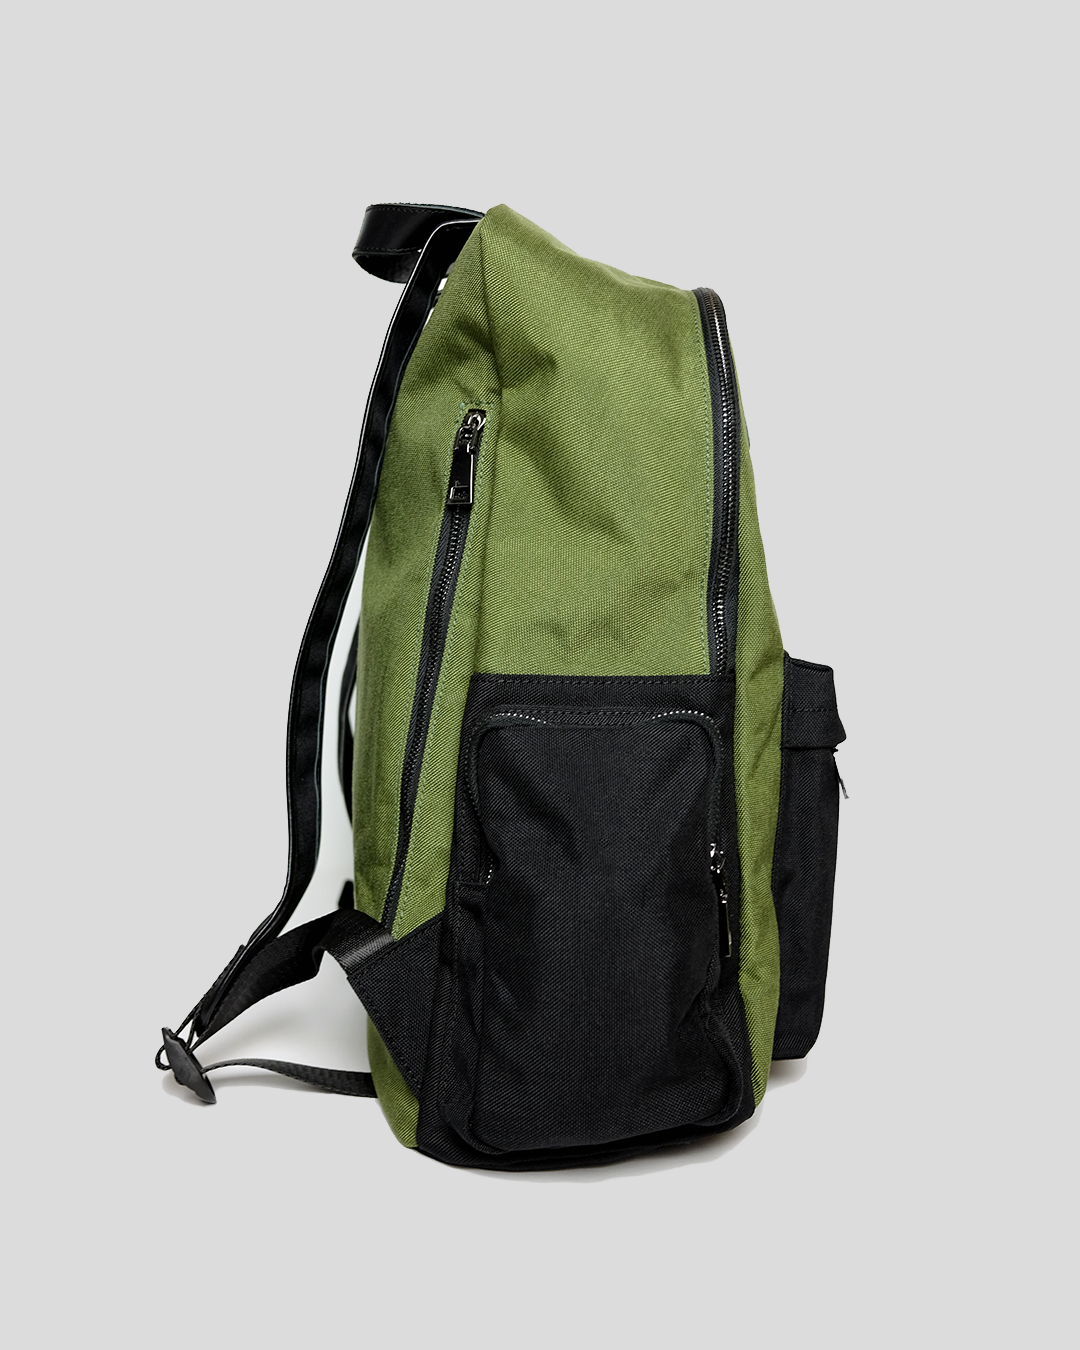 photo-2-GREEN-CORDURA-BACKPACK-URBANE-MUSE-CHRIS-SMITH